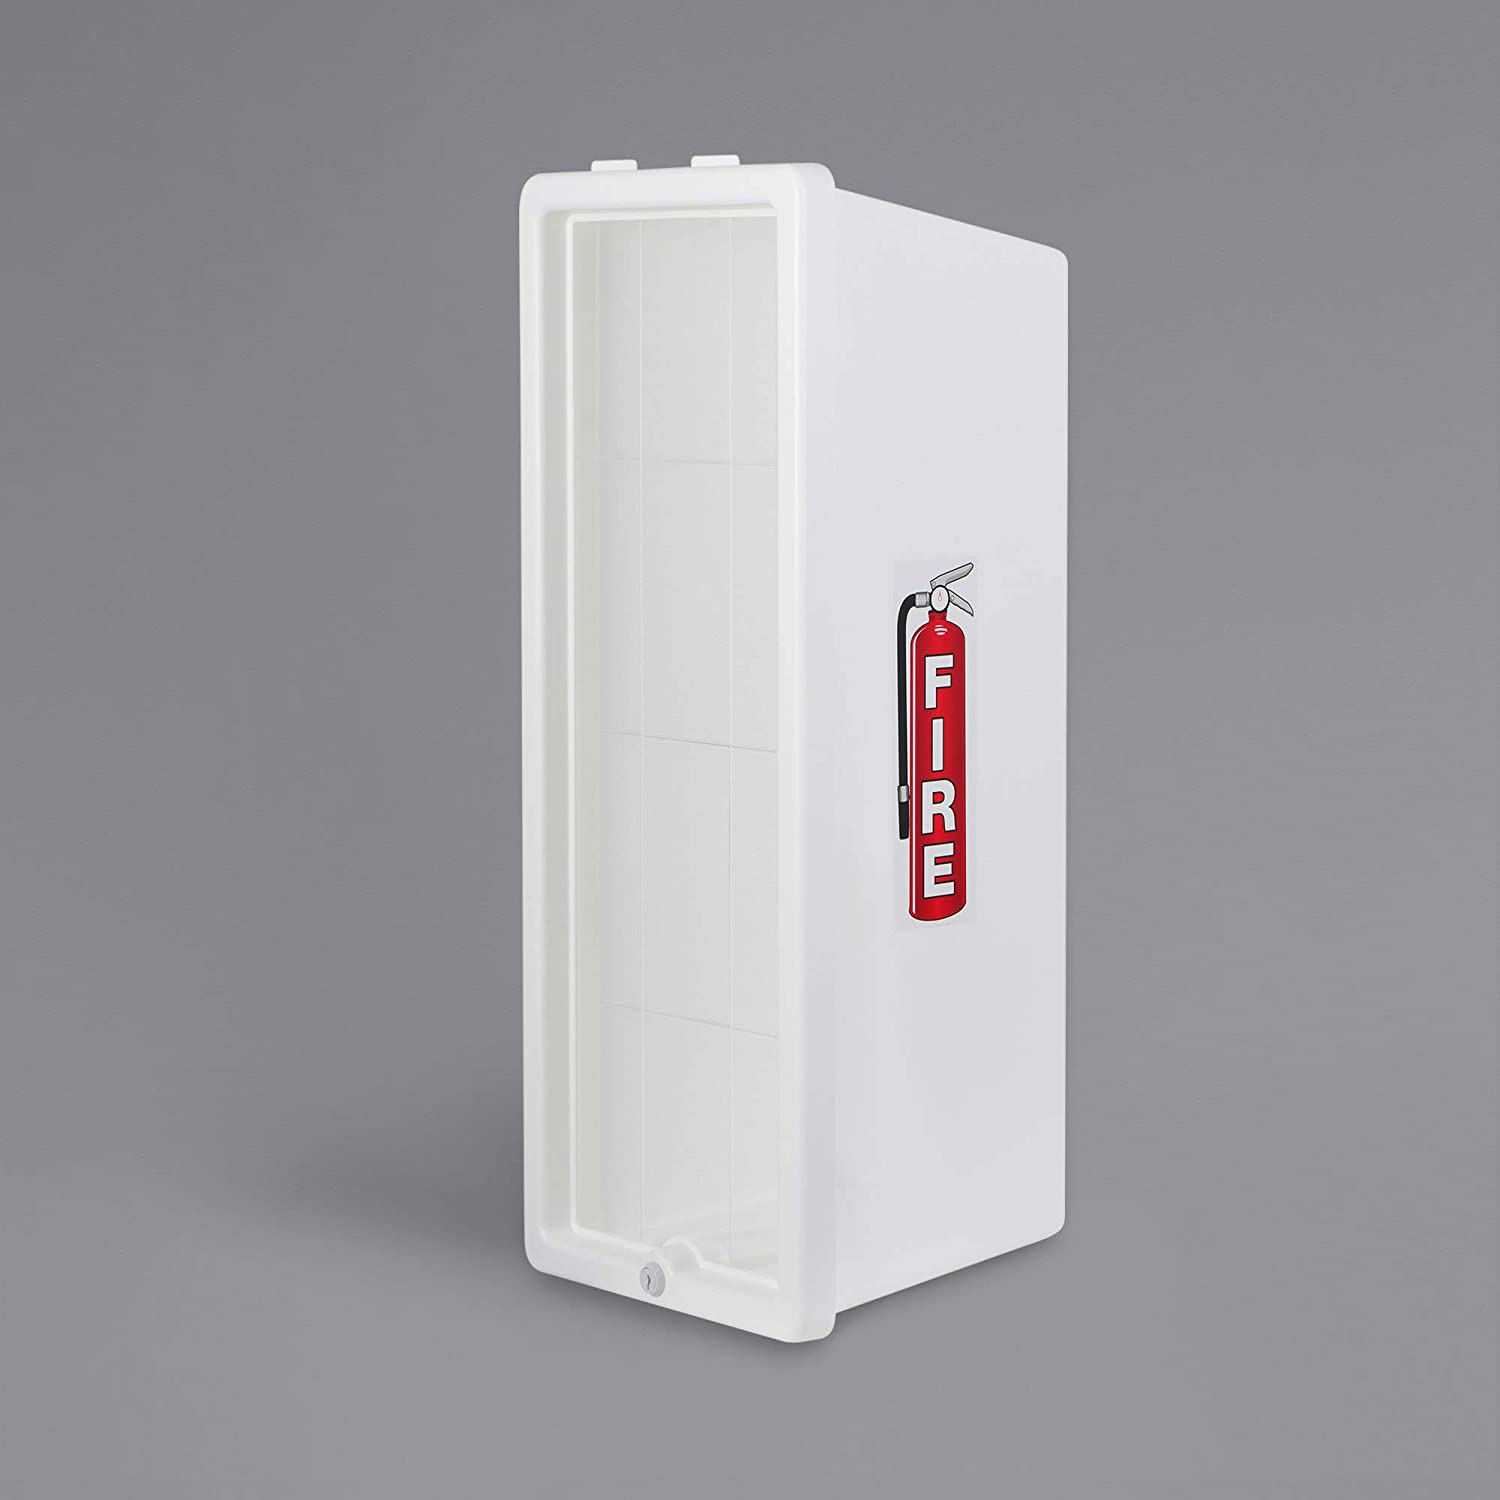 6 Pack Ranking TOP10 White 5 popular Surface-Mounted Fire for 20 Cabinet Extinguisher l